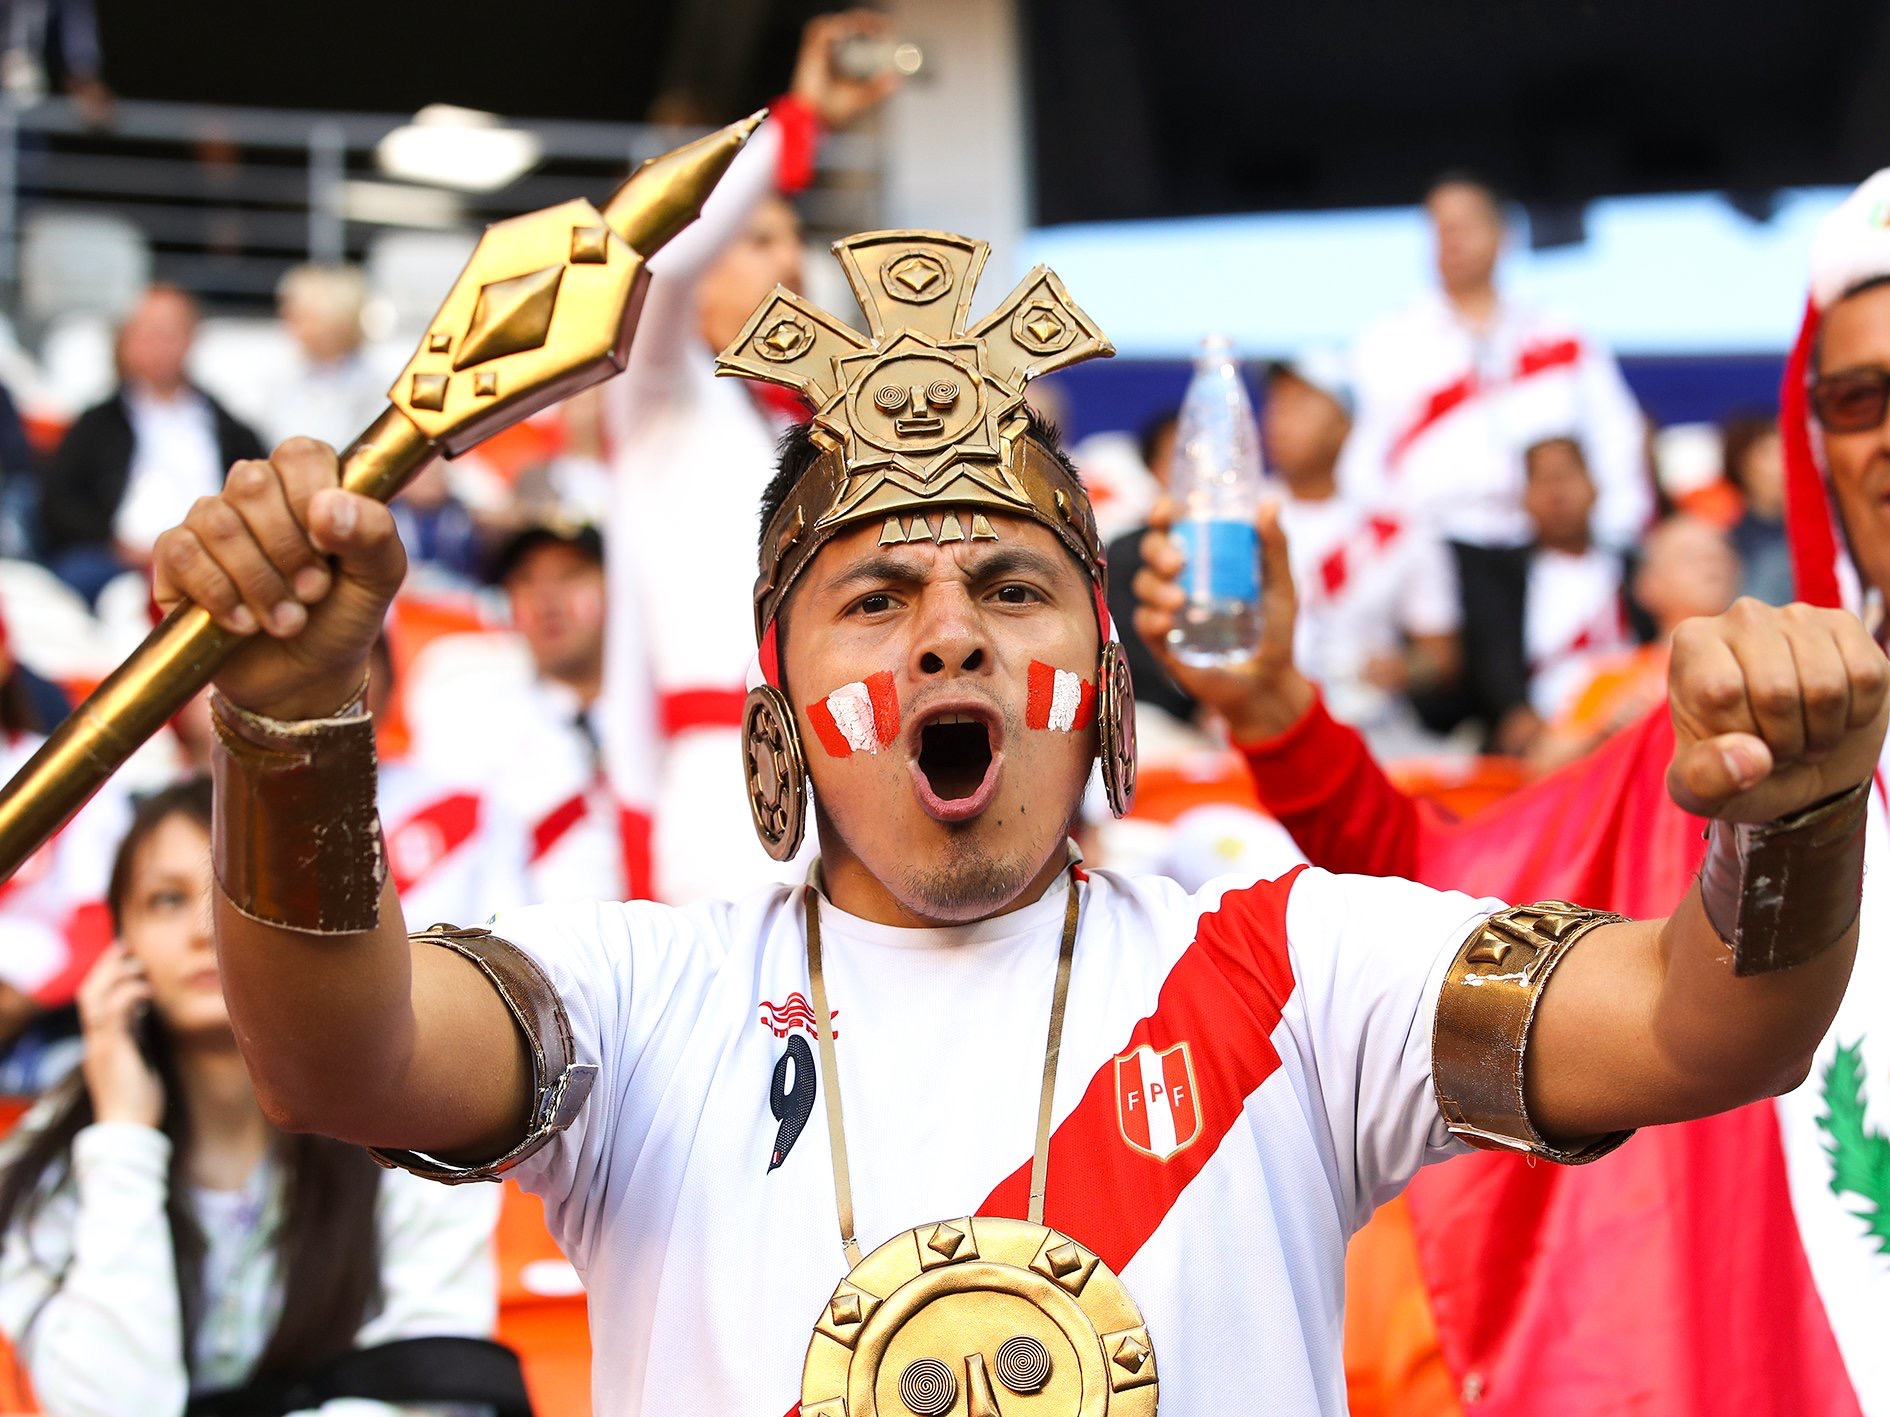 Peru  May Have Lost the Match, But it Won the World's Heart